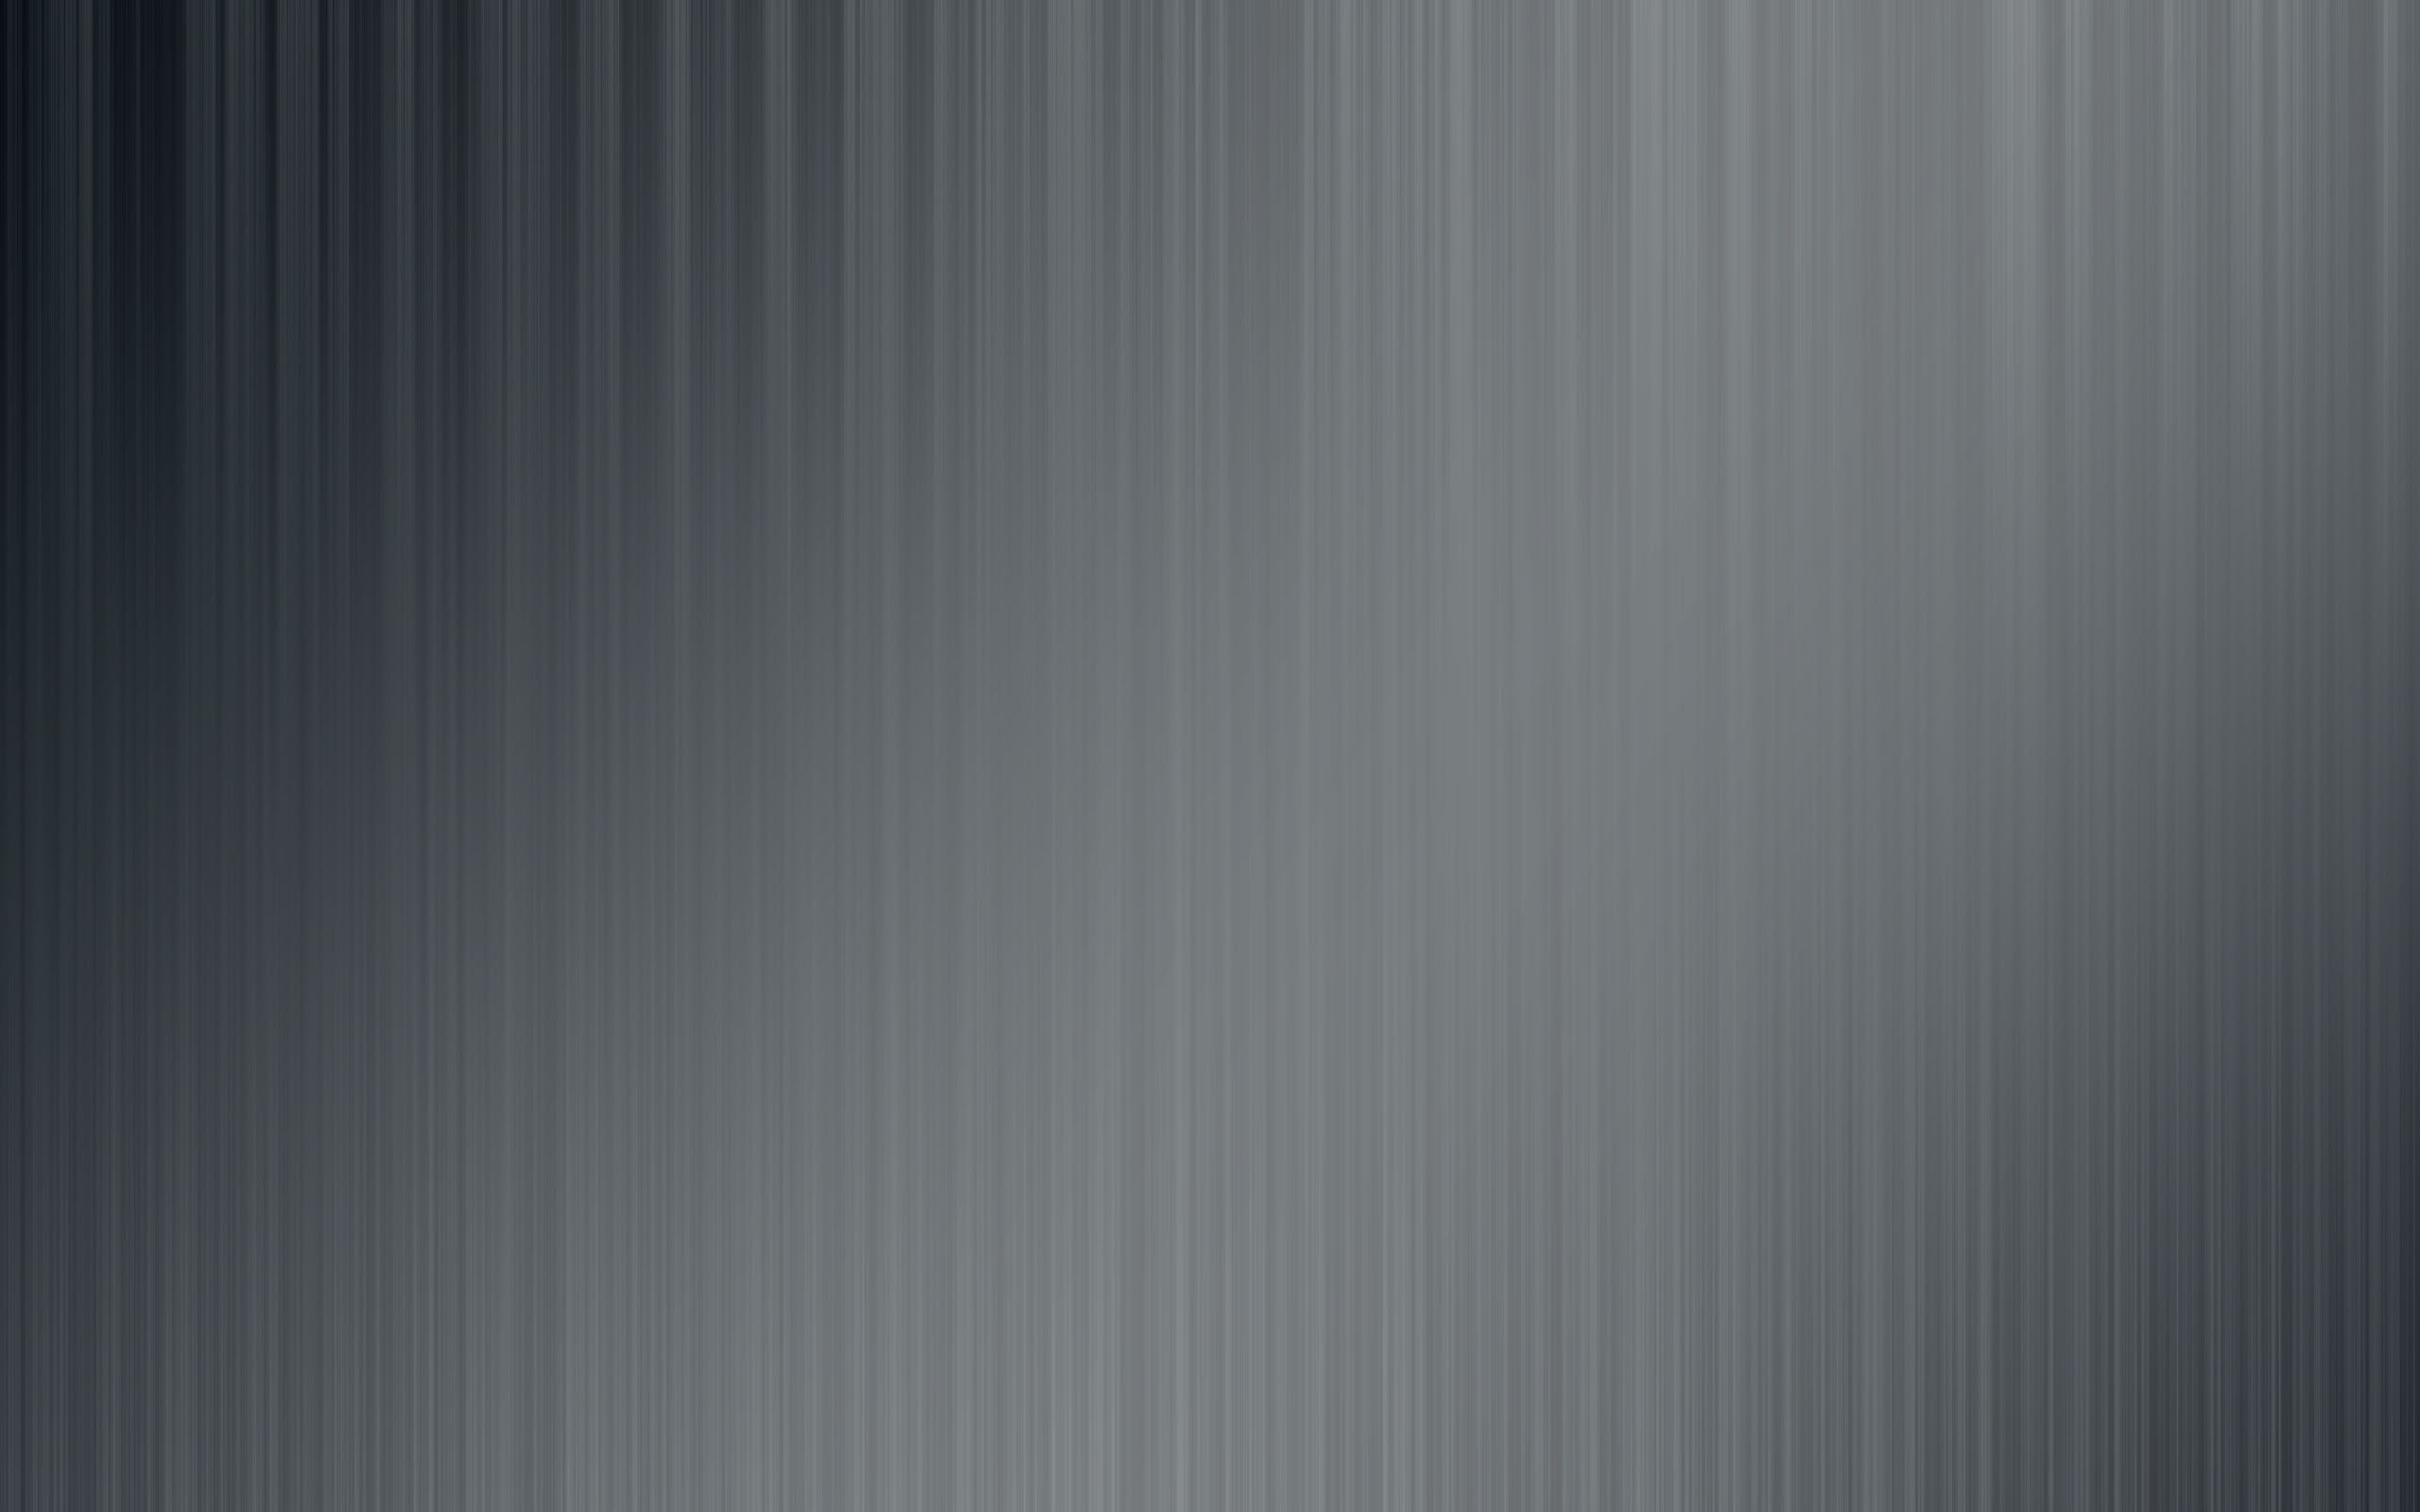 Gray Texture wallpapers and images   wallpapers pictures photos 2560x1600